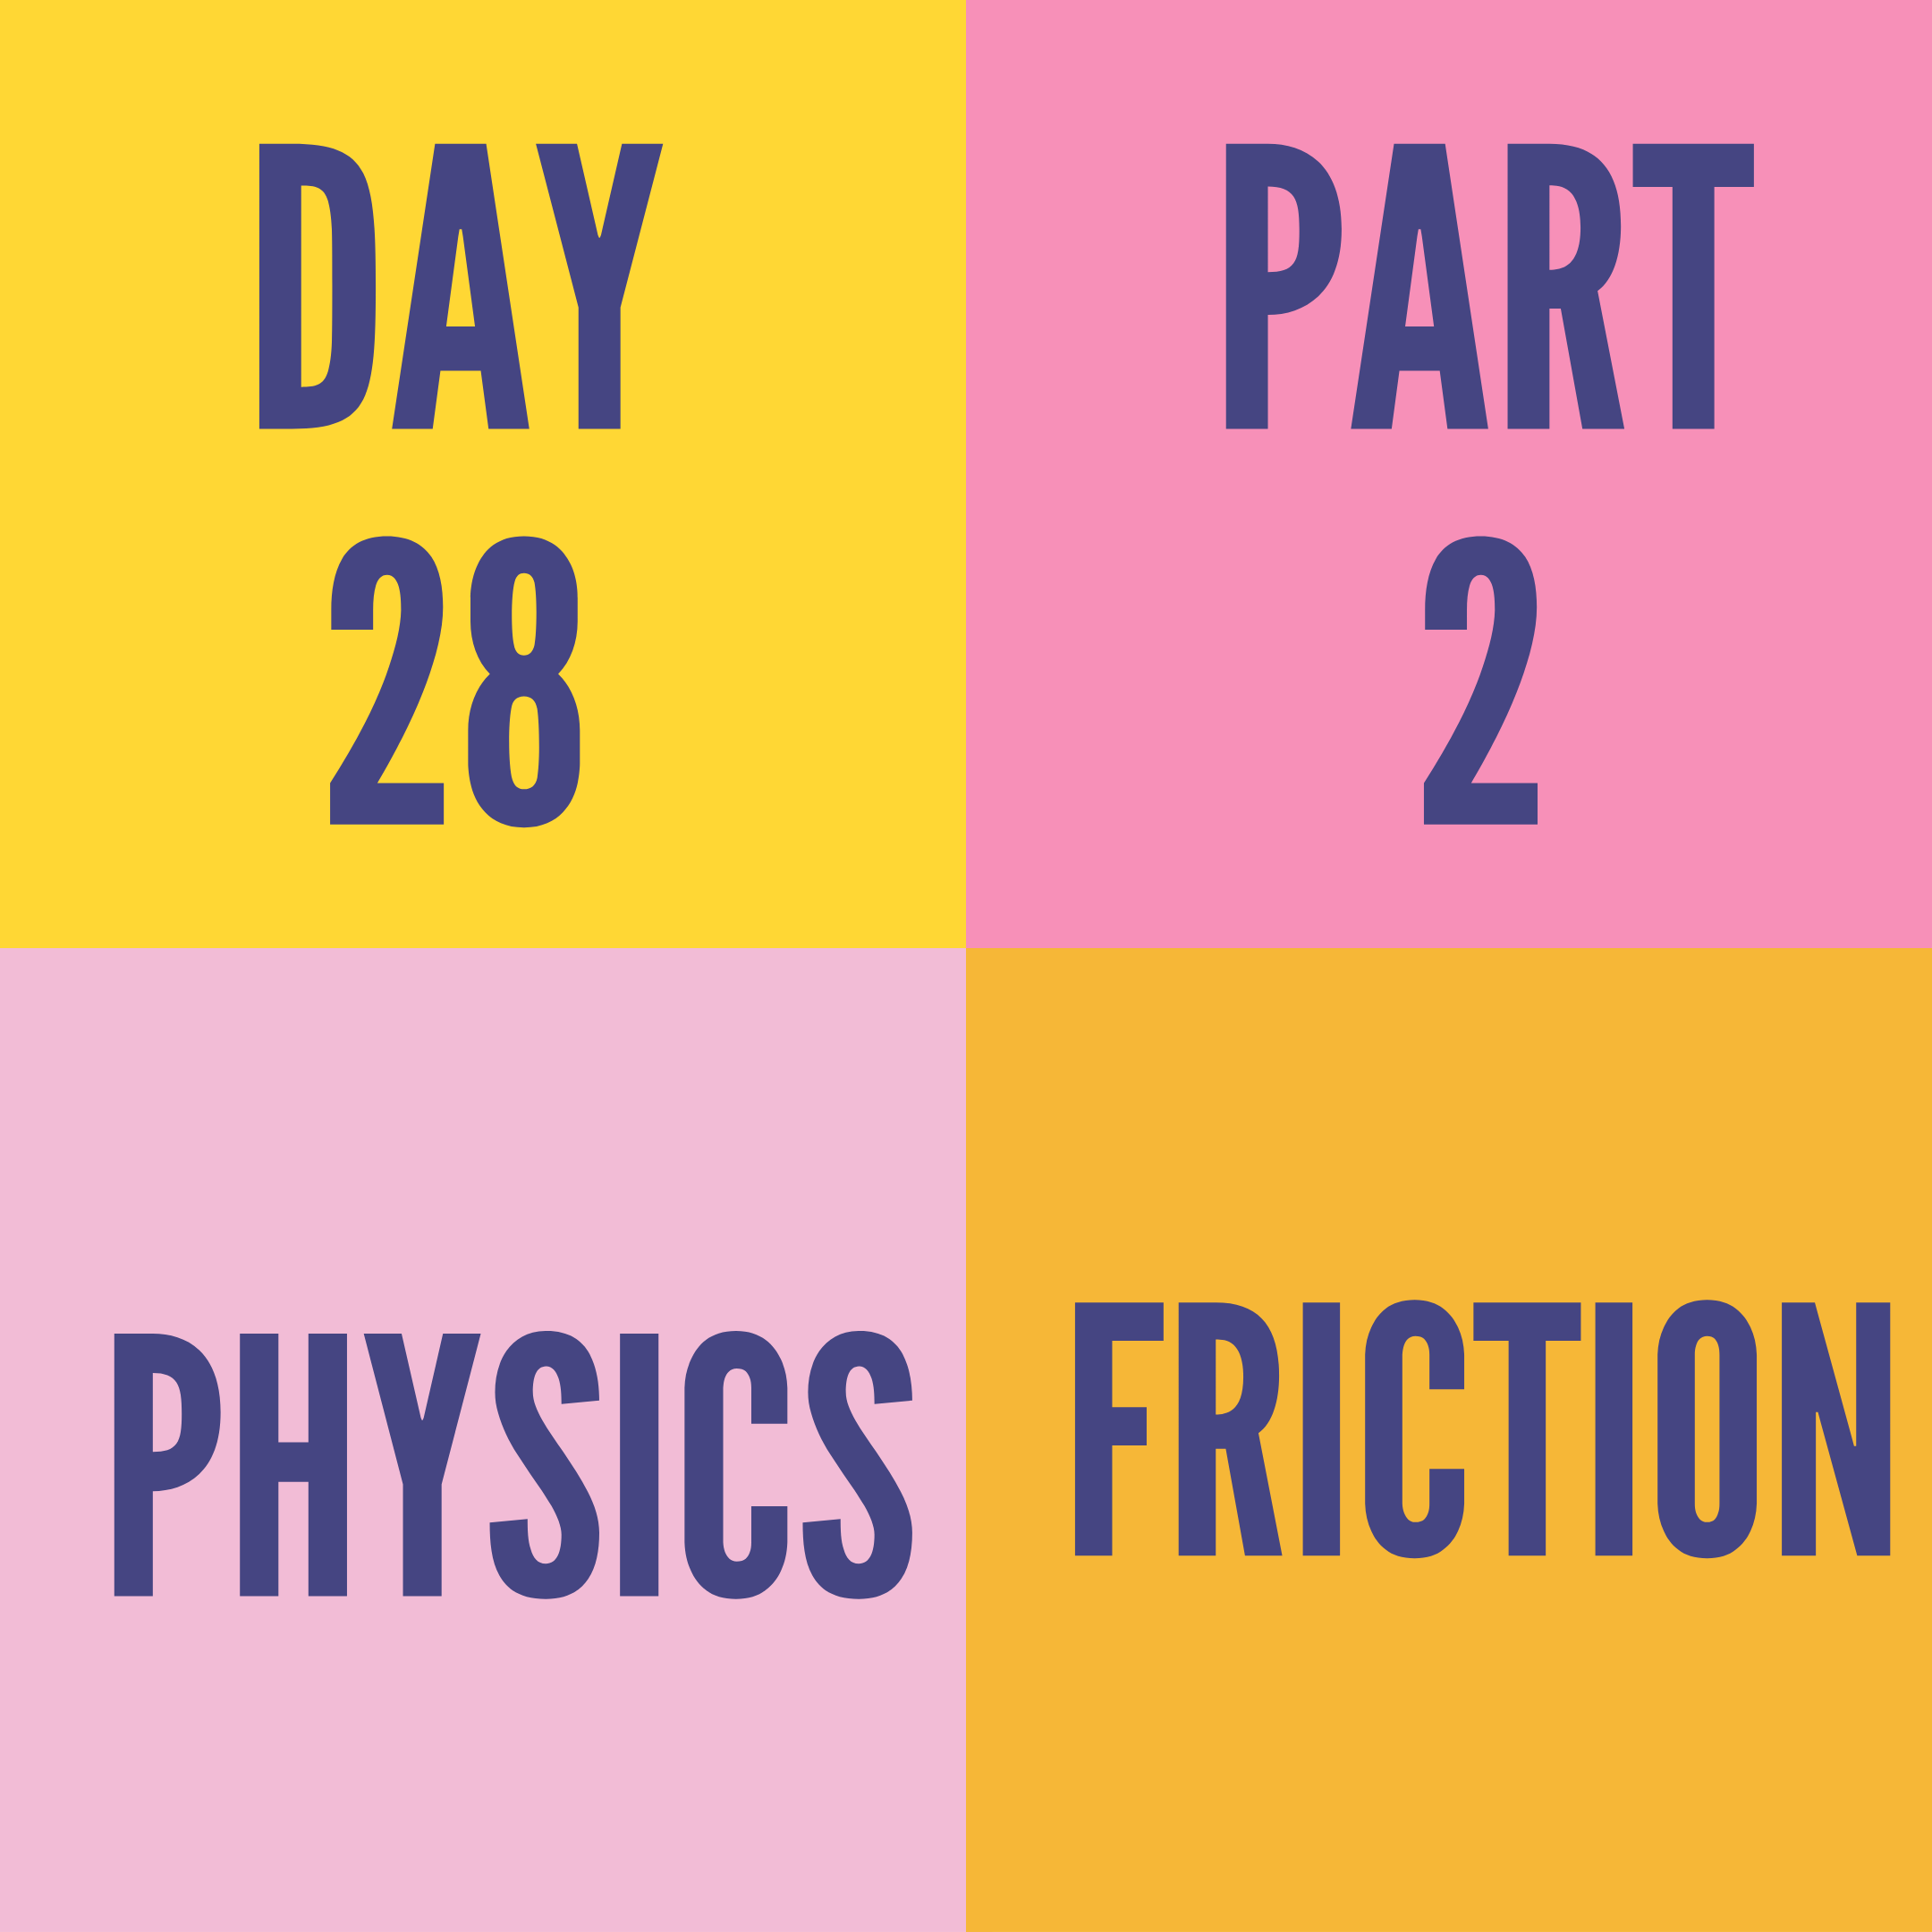 DAY-28 PART-2 FRICTION